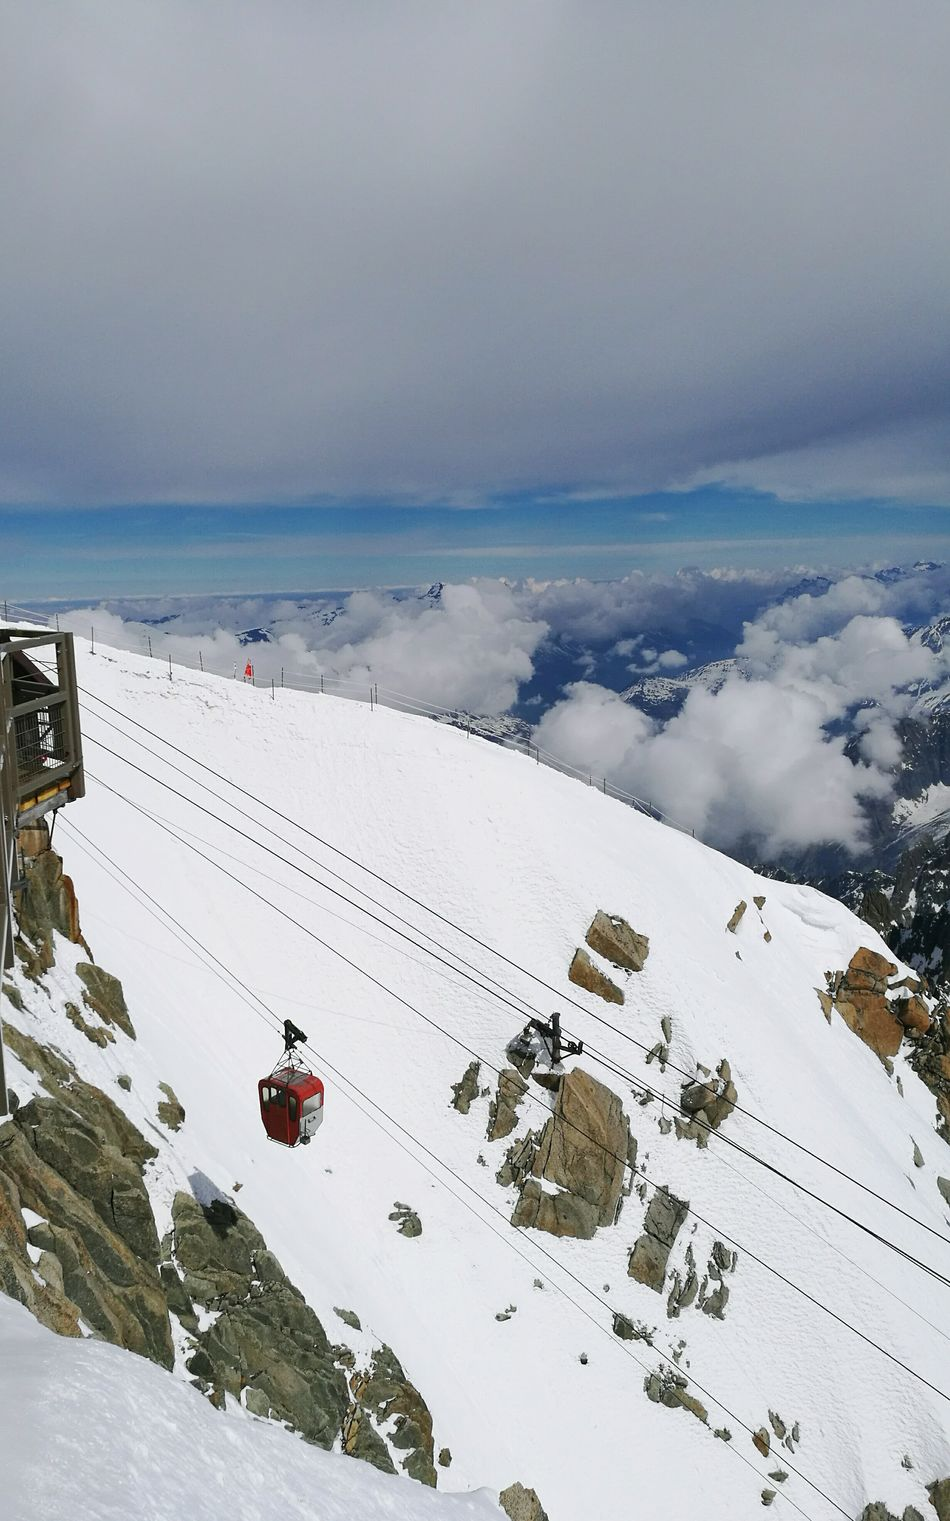 Aiguille du midi Chamonix-Mont-Blanc France 🇫🇷 Ski Skiing Sky Sky And Clouds Snow Snow Day Snowboarding Snow Sports Mountains mountain views Cold Temperature Point Tranquility Nature Beauty In Nature April 2017 Grands Montets Brevent Flegere Sea And Sky EyeEm Best Shots Eye4photography  EyeEm Gallery EyeEmBestPics